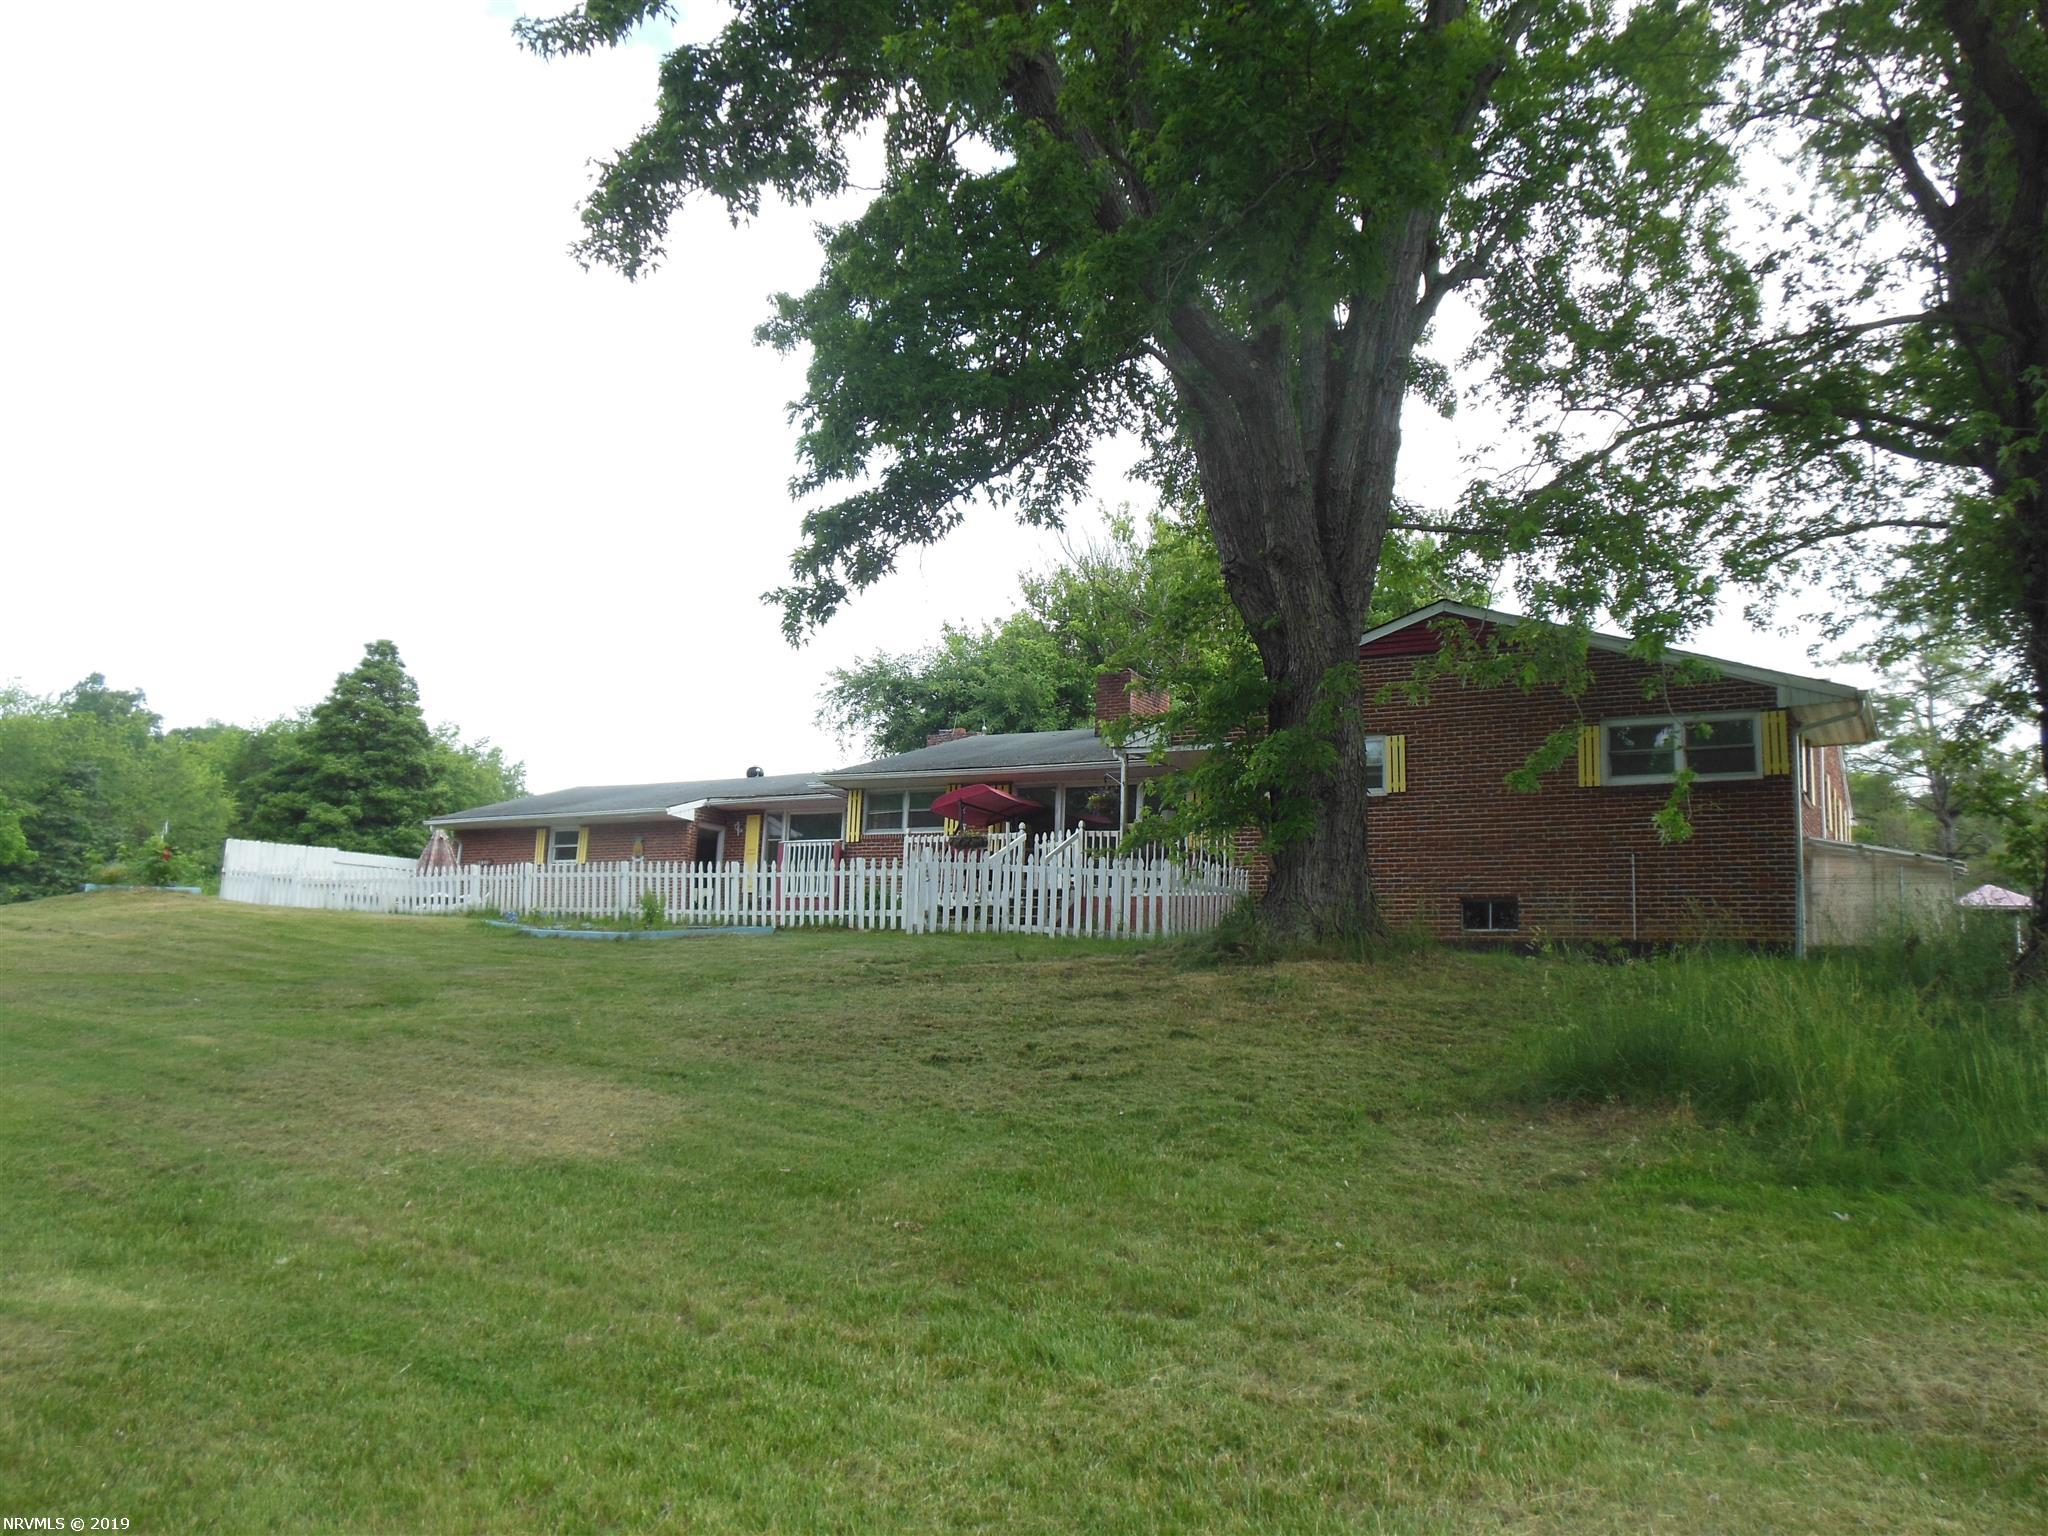 This renovated Brick rancher is huge with large formal and informal areas to live your life fully. The main house has 3-5 BRs and 2.5 baths sits on over 4 acres with additional mostly wooded acreage behind the barn/workshop. Property has 540 feet road frontage, picketed fenced front yard and fenced  yard for the kids, horses & other 4 legged friends. 10 minutes from Radford, this can be the mini farm you were dreaming about. Heat Pump for main level and Wood stove in lower level. Two kitchens and double attached garage and tons of character. The separate large barn with attached very large workshop is wonderful space for all animals you may have and mechanical/wood work shop you may need.